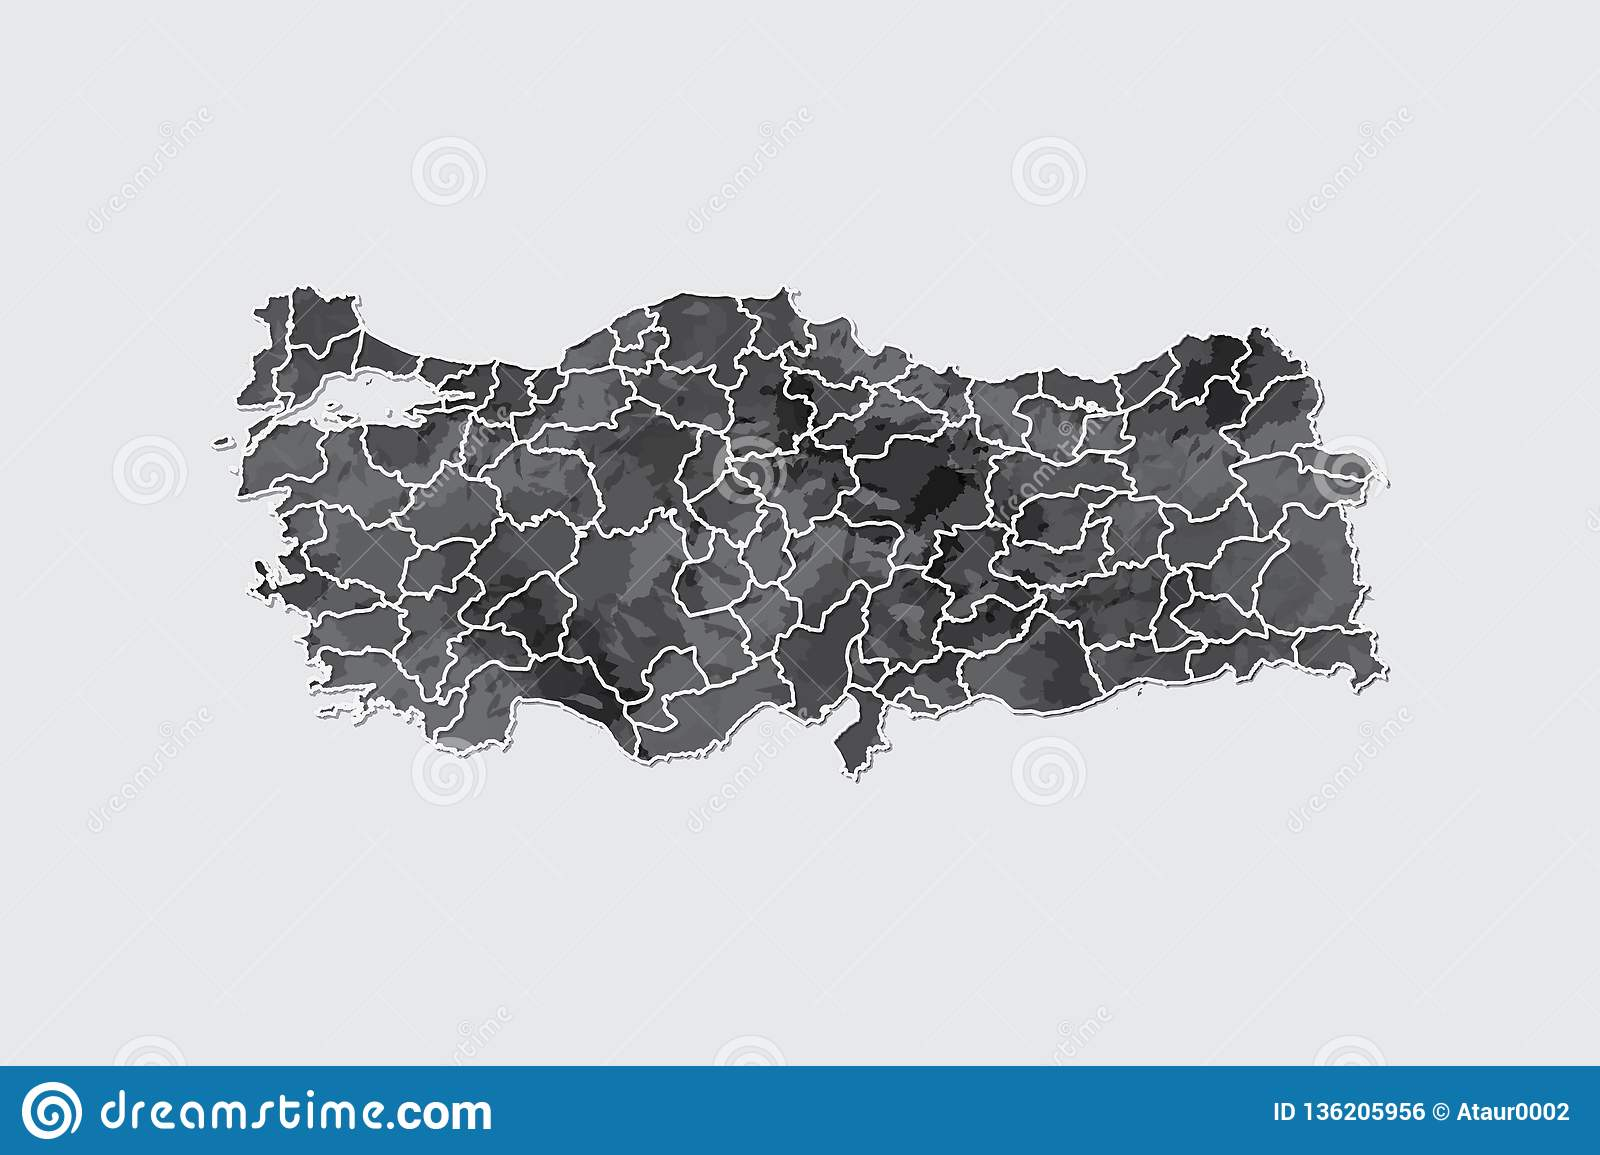 Turkey watercolor map vector illustration in black color with border lines of different provinces on light background using paint